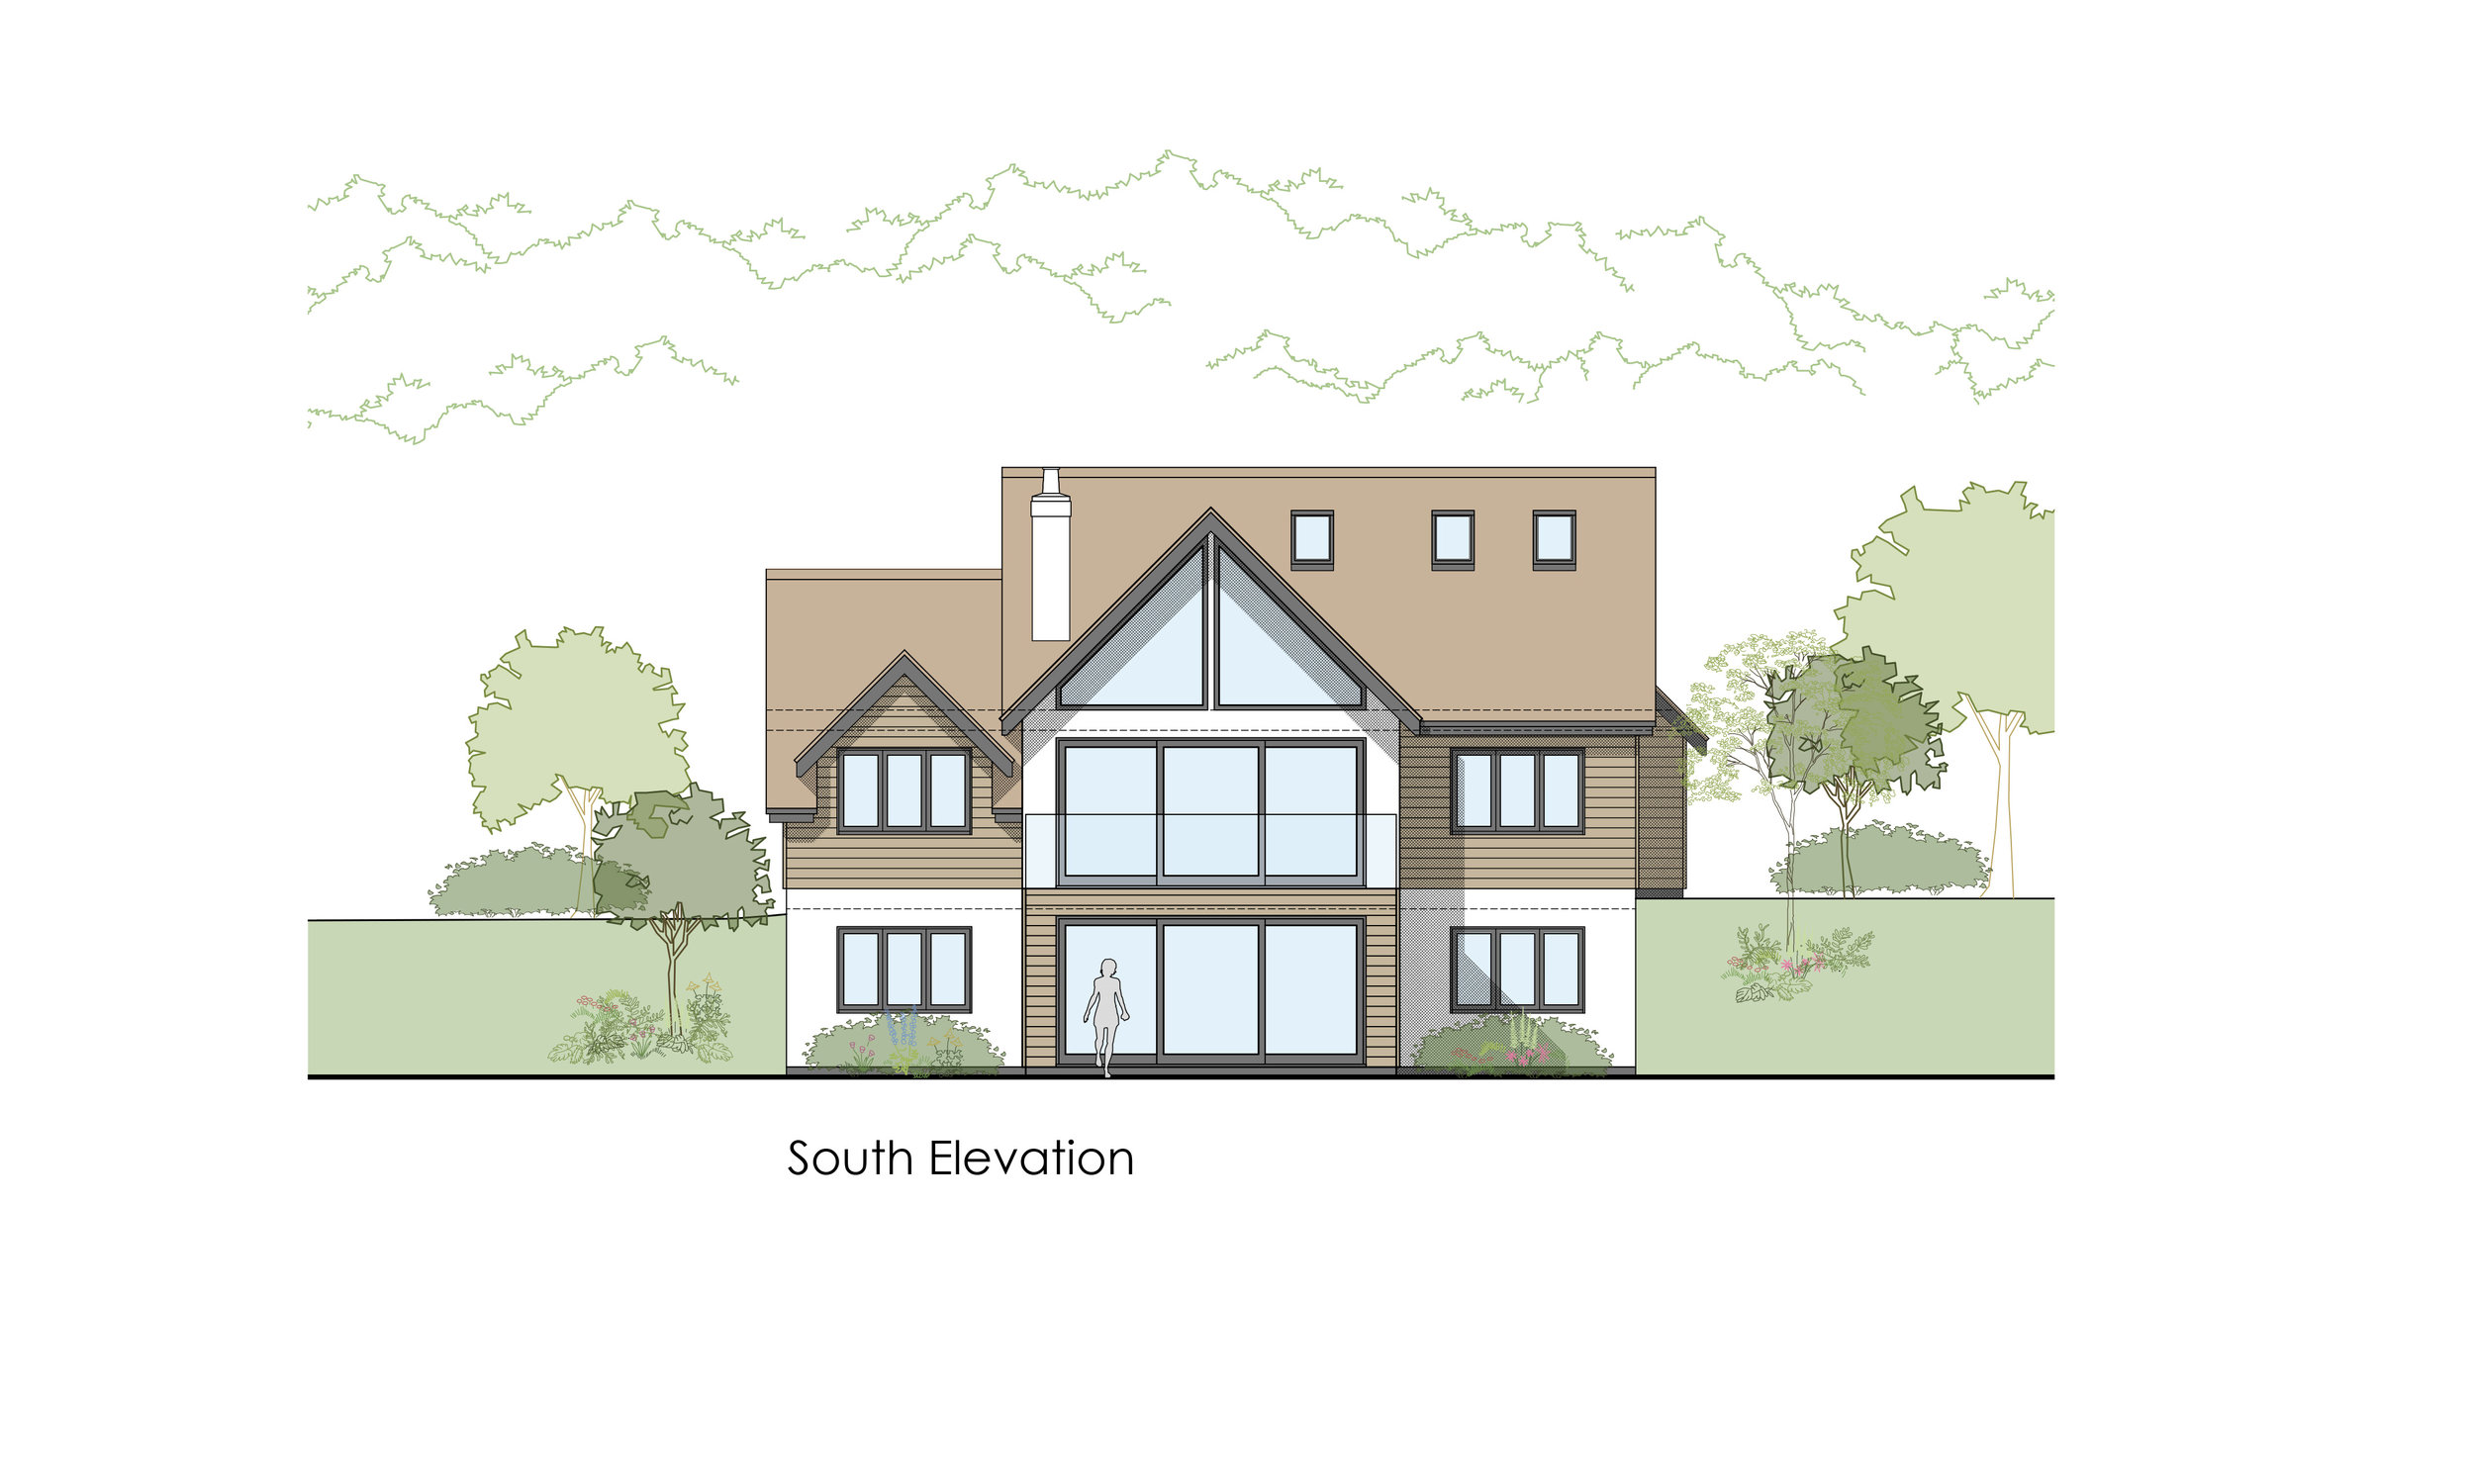 P18-004-02-05-003 - Proposed South Elevation.jpg